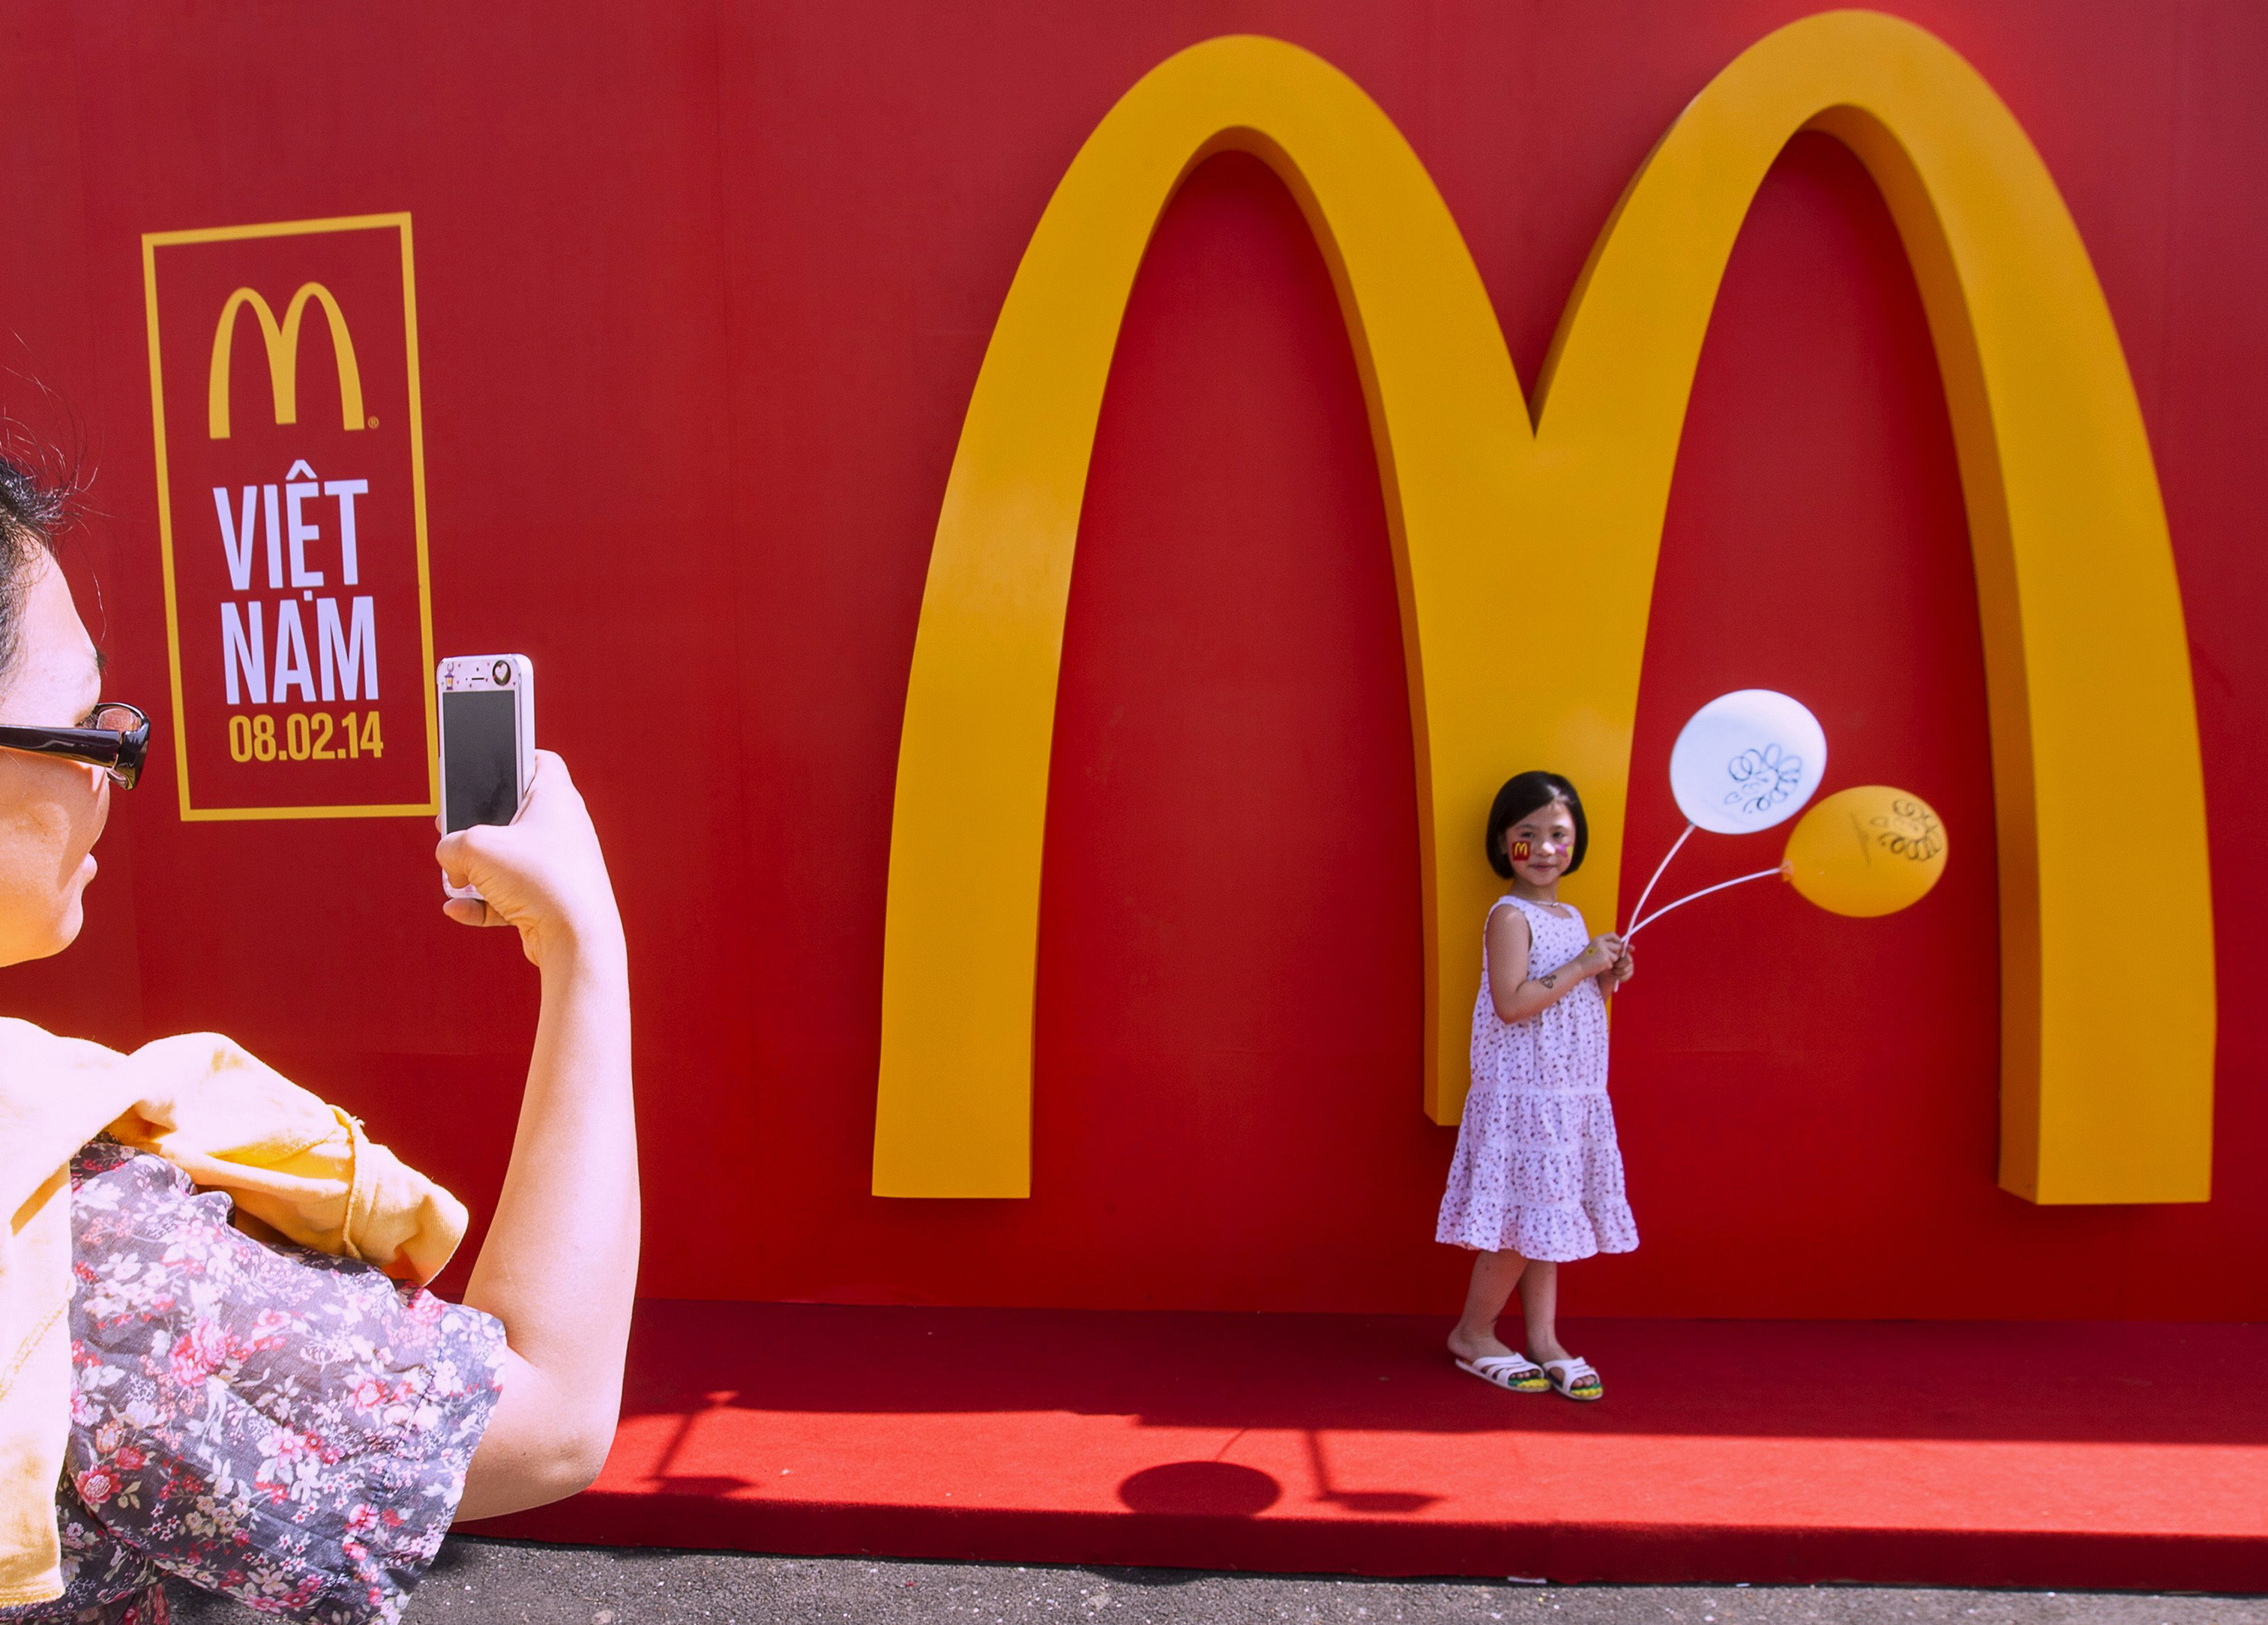 A mother takes a picture of her daughter in front of the Golden Arches during the opening ceremony of Vietnam's first McDonald's restaurant in Ho Chi Minh City on Feb. 8, 2014